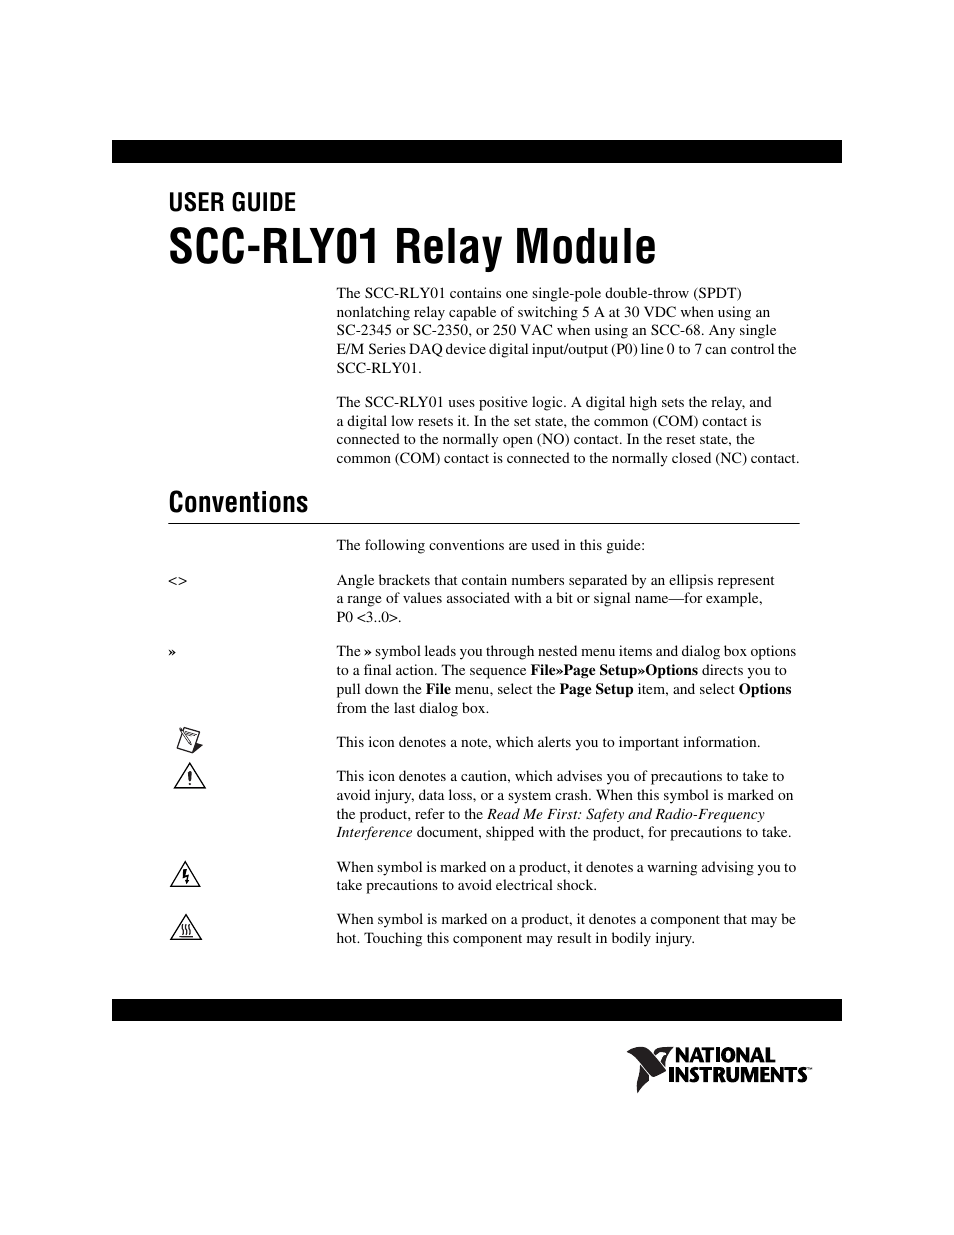 National Instruments Relay Module Scc Rly01 User Manual 9 Pages